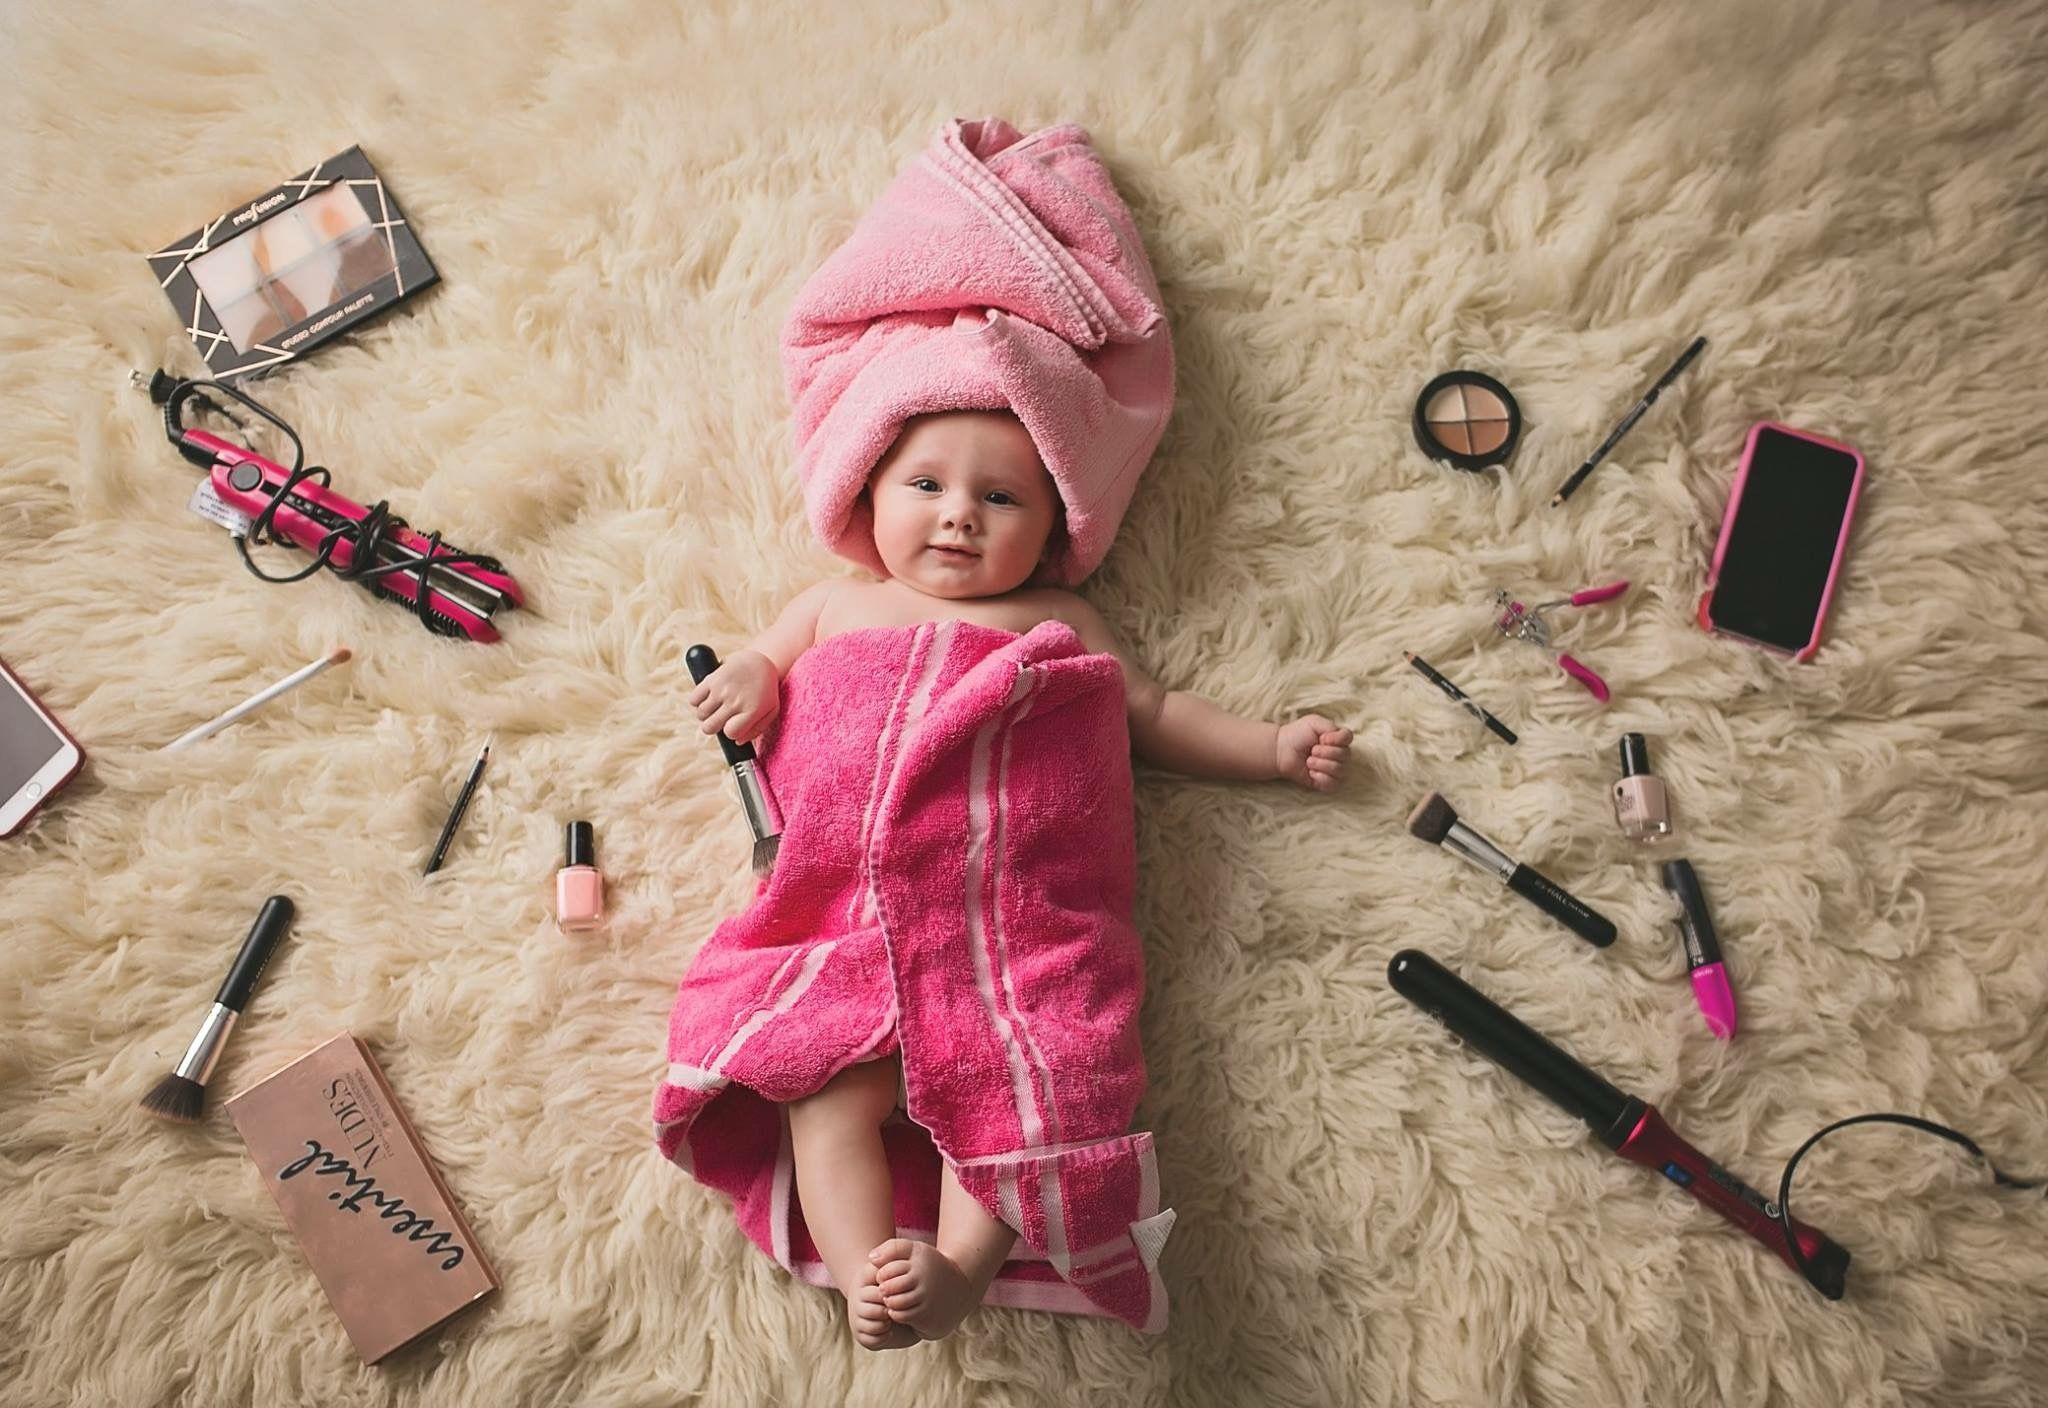 Baby Fotoshooting Ideen 4 Month Baby Girl Pink Make Up Towels Photography Ideas